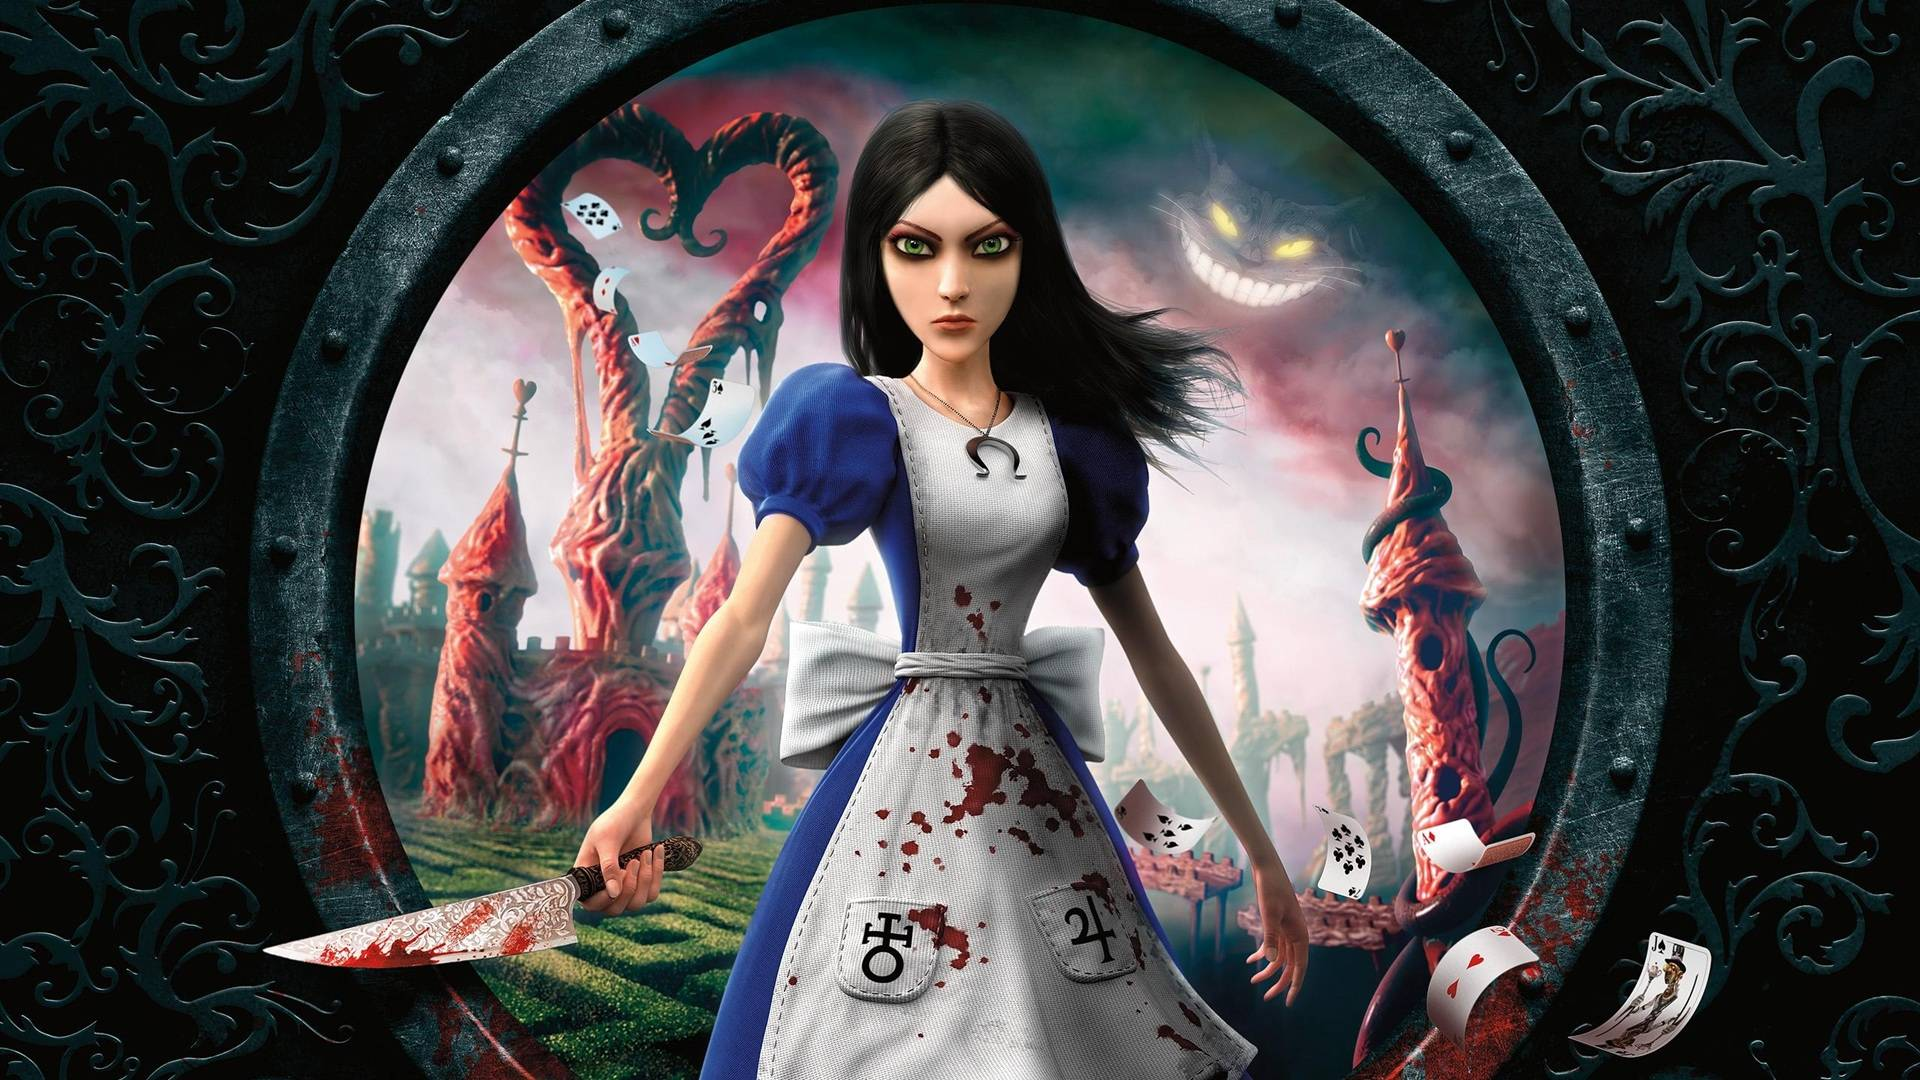 Alice Madness Returns Wallpapers in full 1080P HD « GamingBolt com